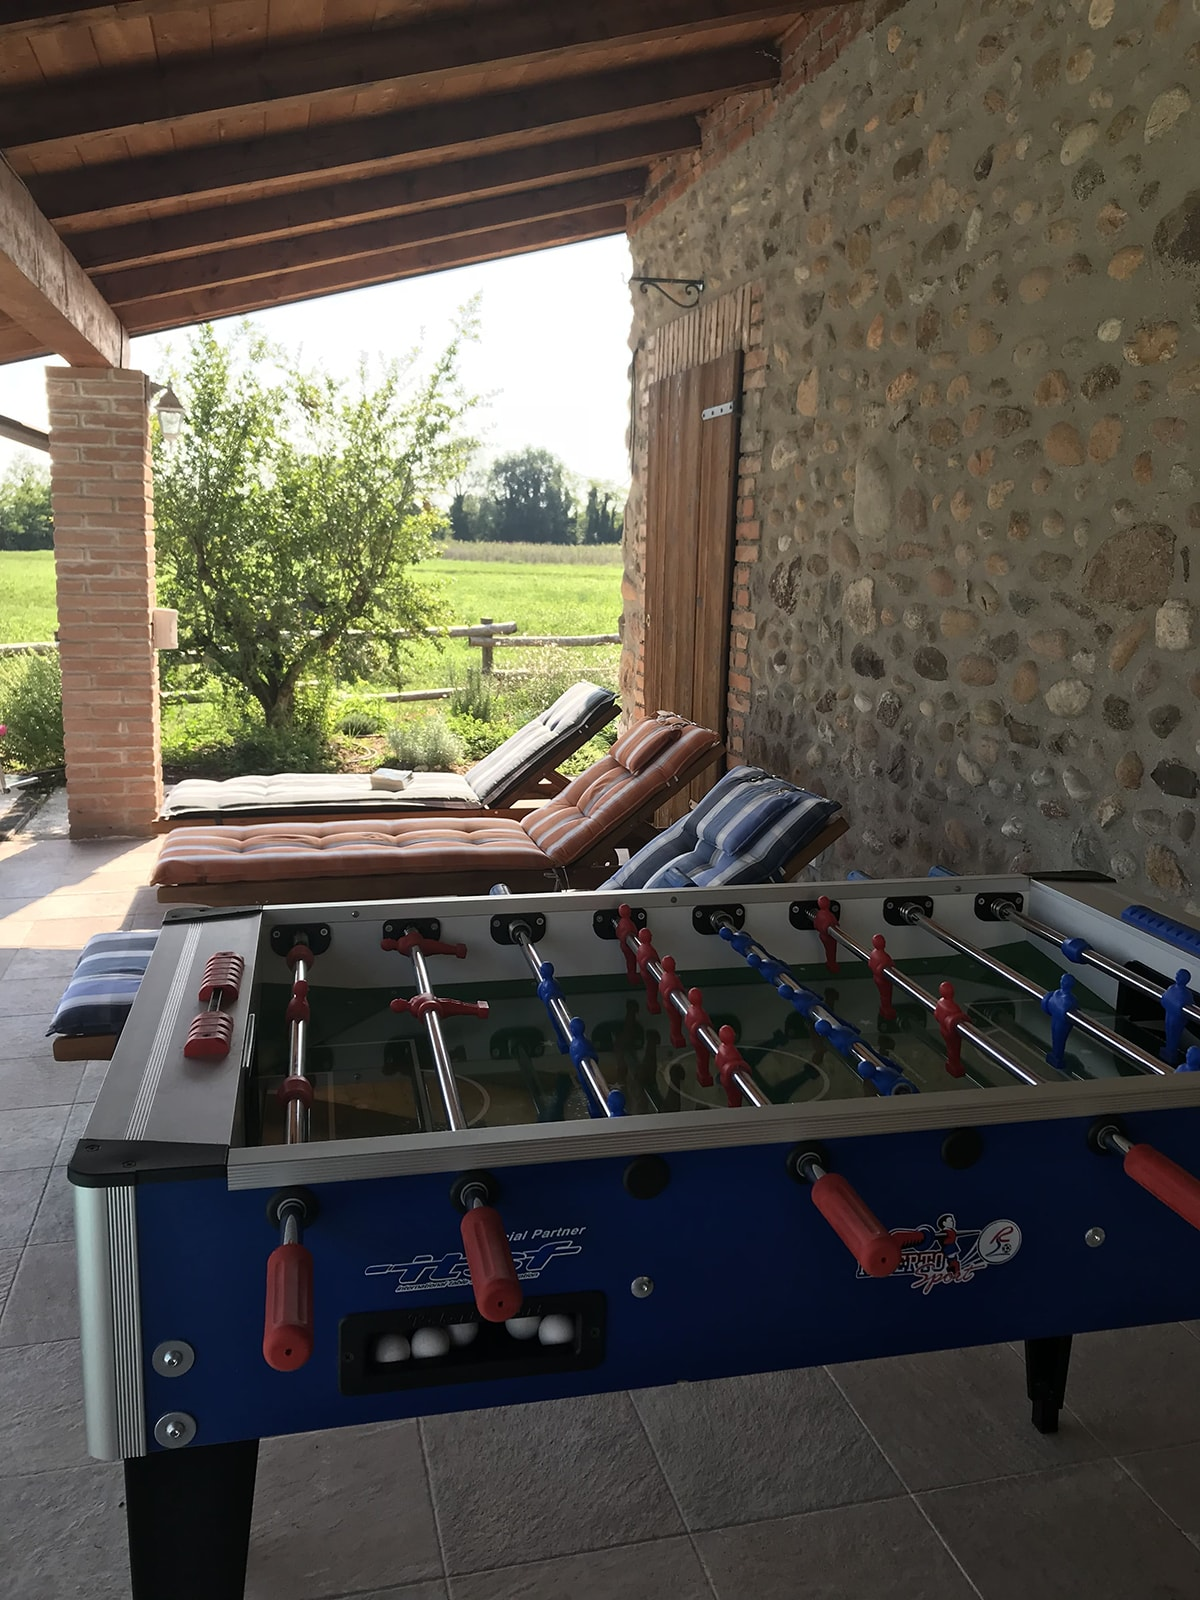 Games - Holiday appartments in Borghetto sul Mincio, Verona